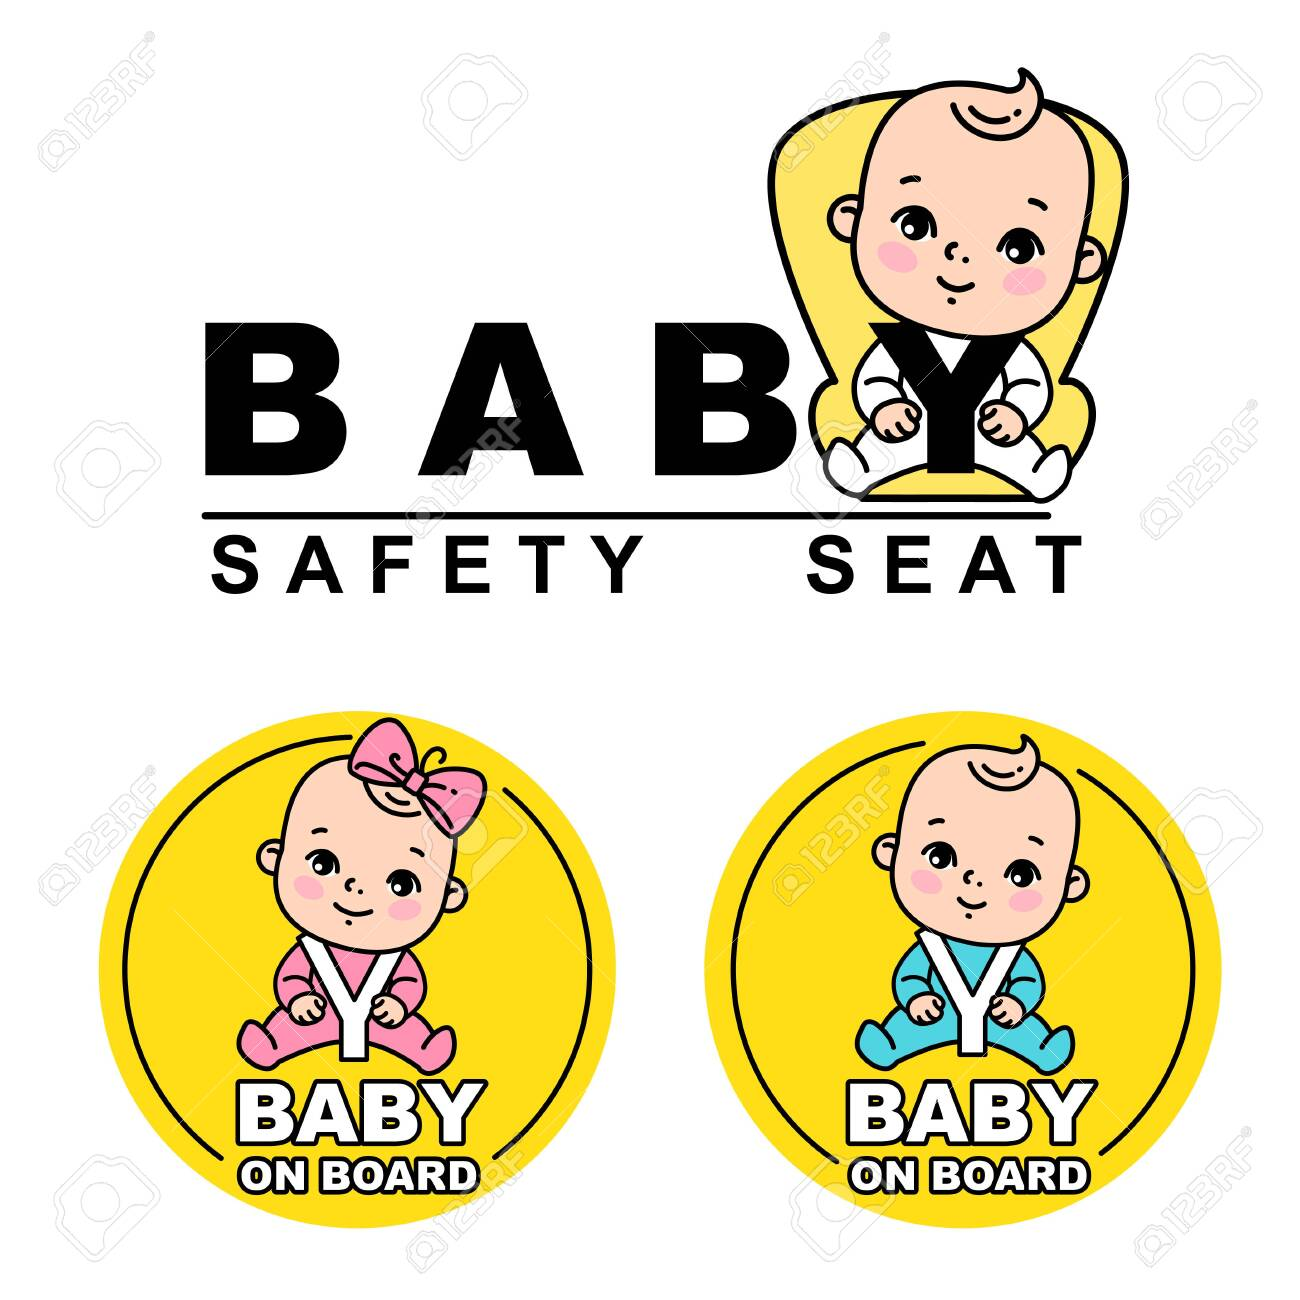 Baby Safety Seat Emblem Sticker For Car Baby On Board Icon Royalty Free Cliparts Vectors And Stock Illustration Image 131970598